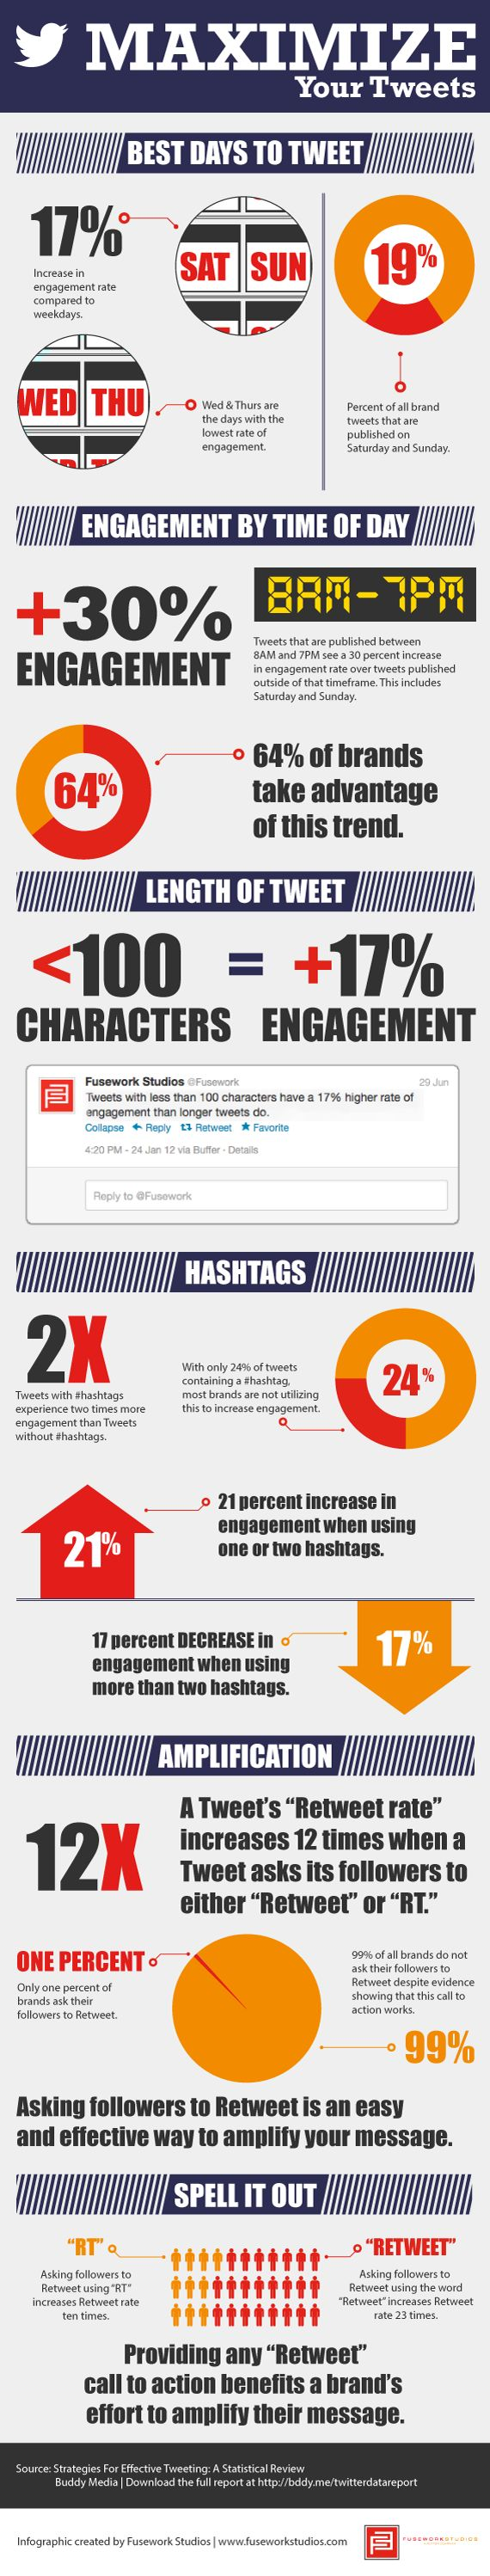 How to Maximize Your Tweets [Infographic]